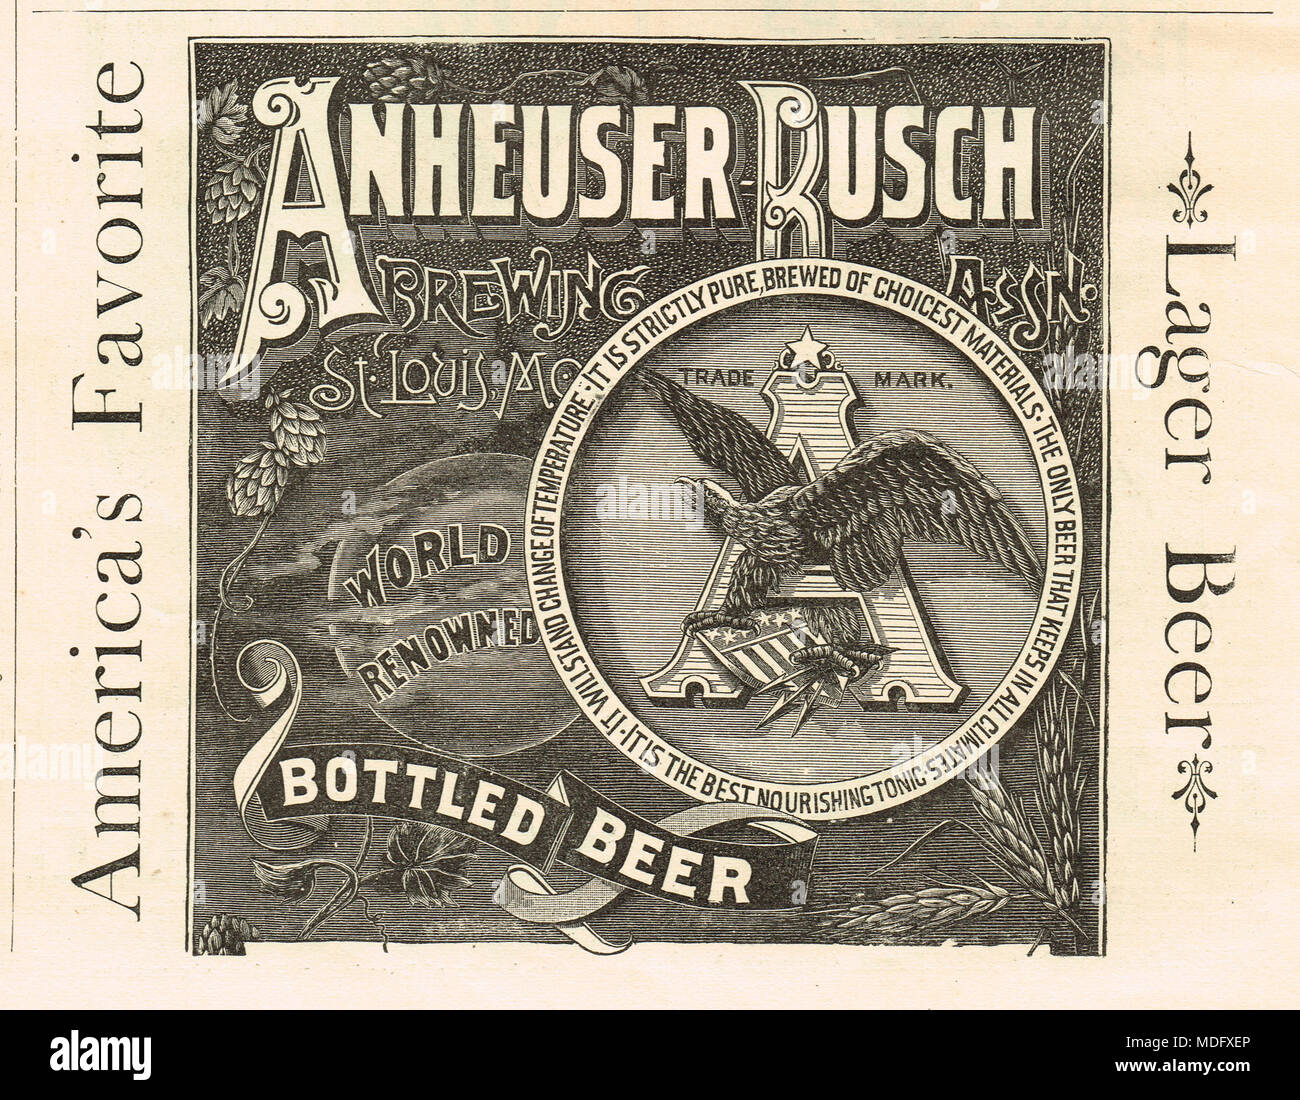 Early advert, Anheuser Busch, 1888 - Stock Image